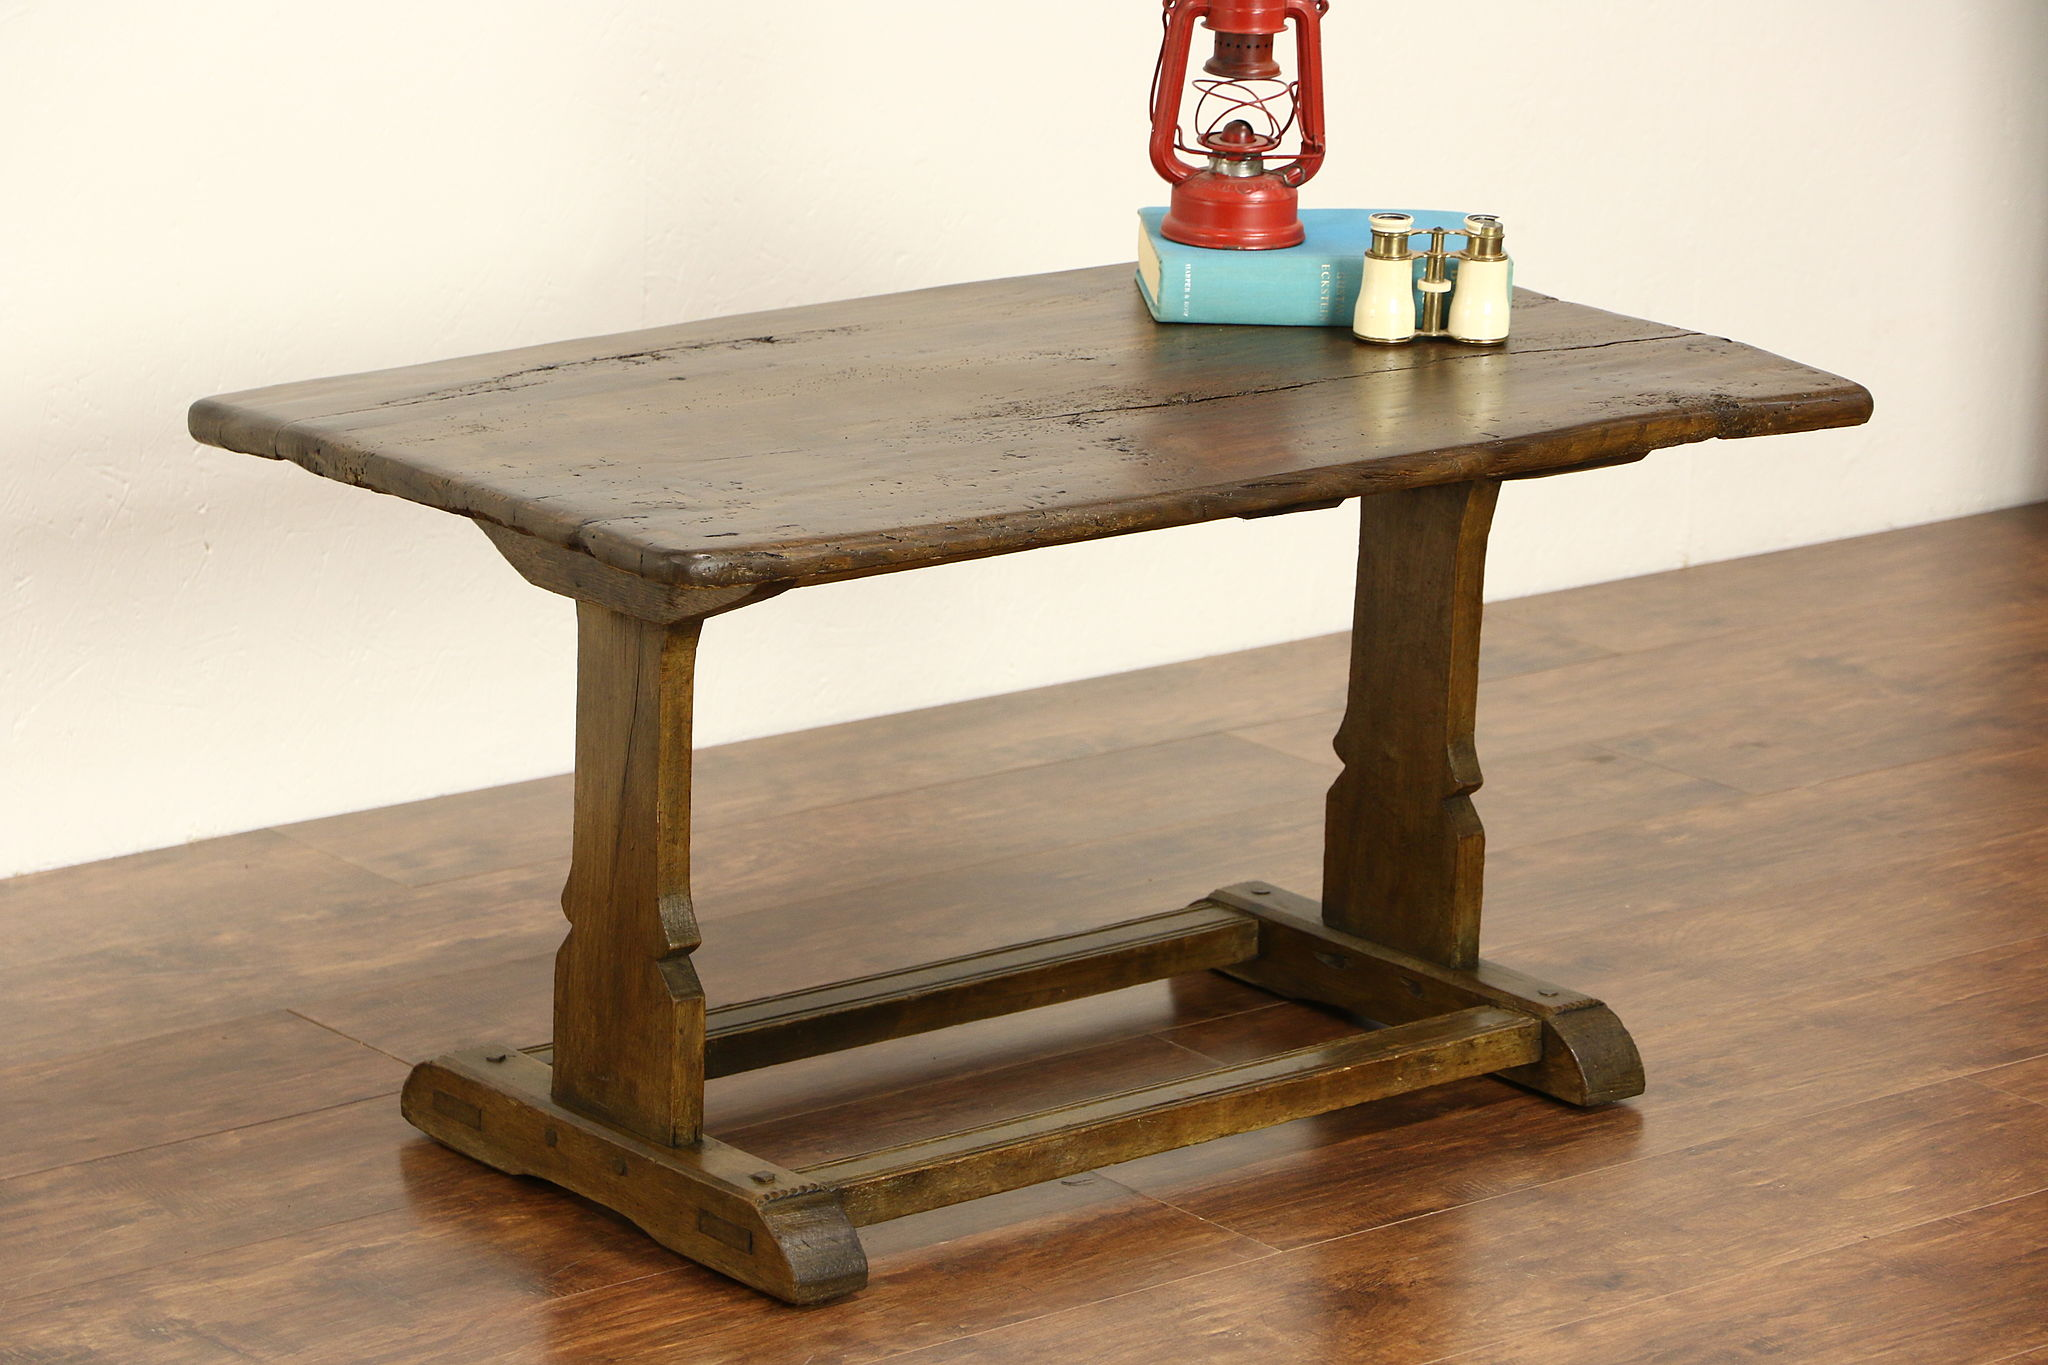 Sold oak hand hewn primitive coffee table from 1700s antique photo 1 oak hand hewn primitive coffee table geotapseo Image collections